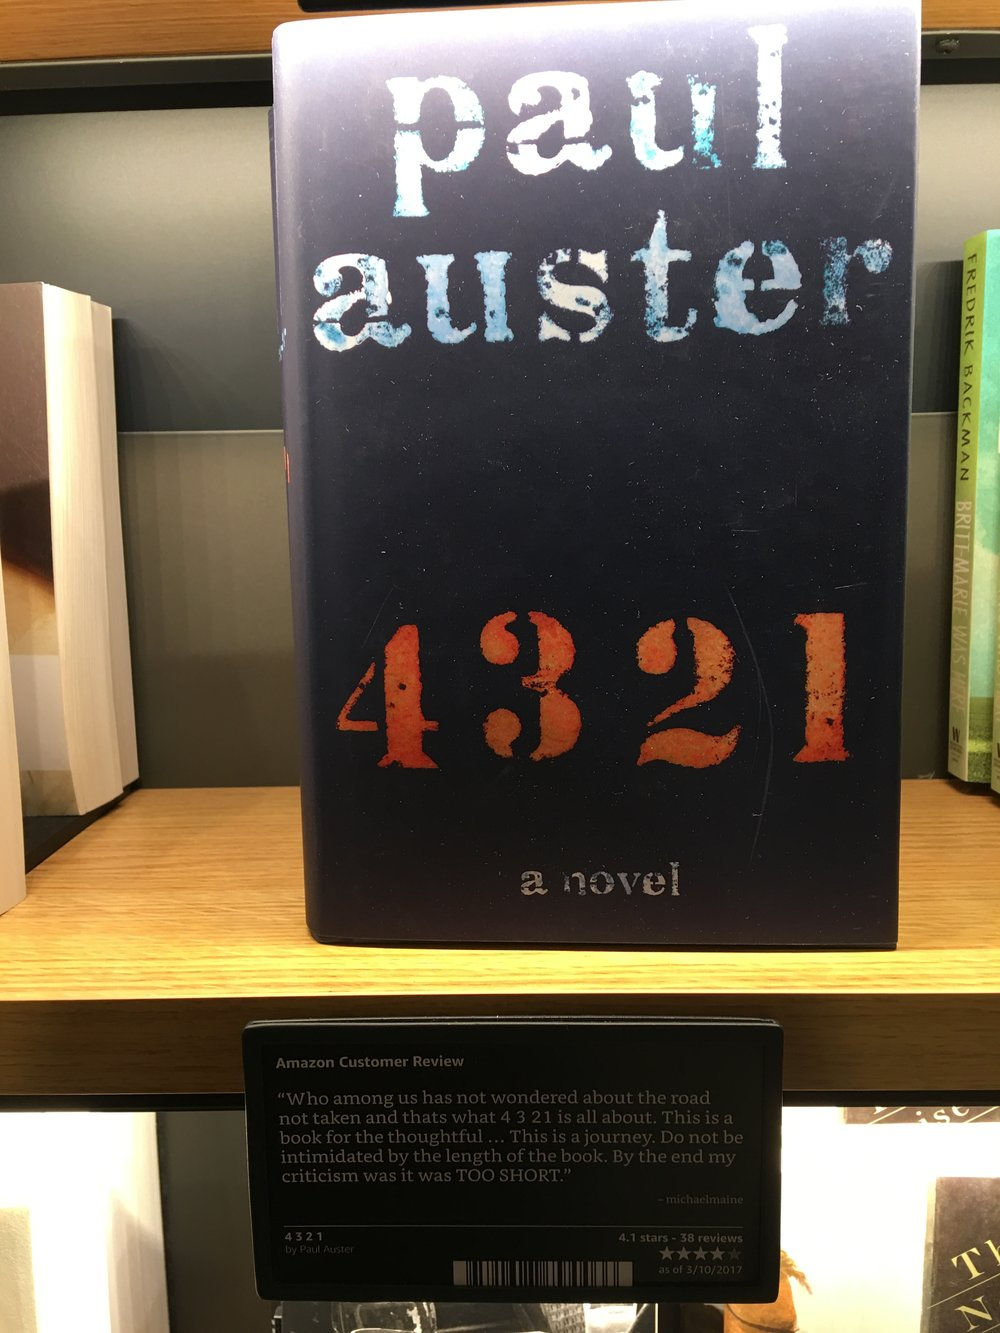 4321 by Paul Auster, and a nice view of the shelf space on display.